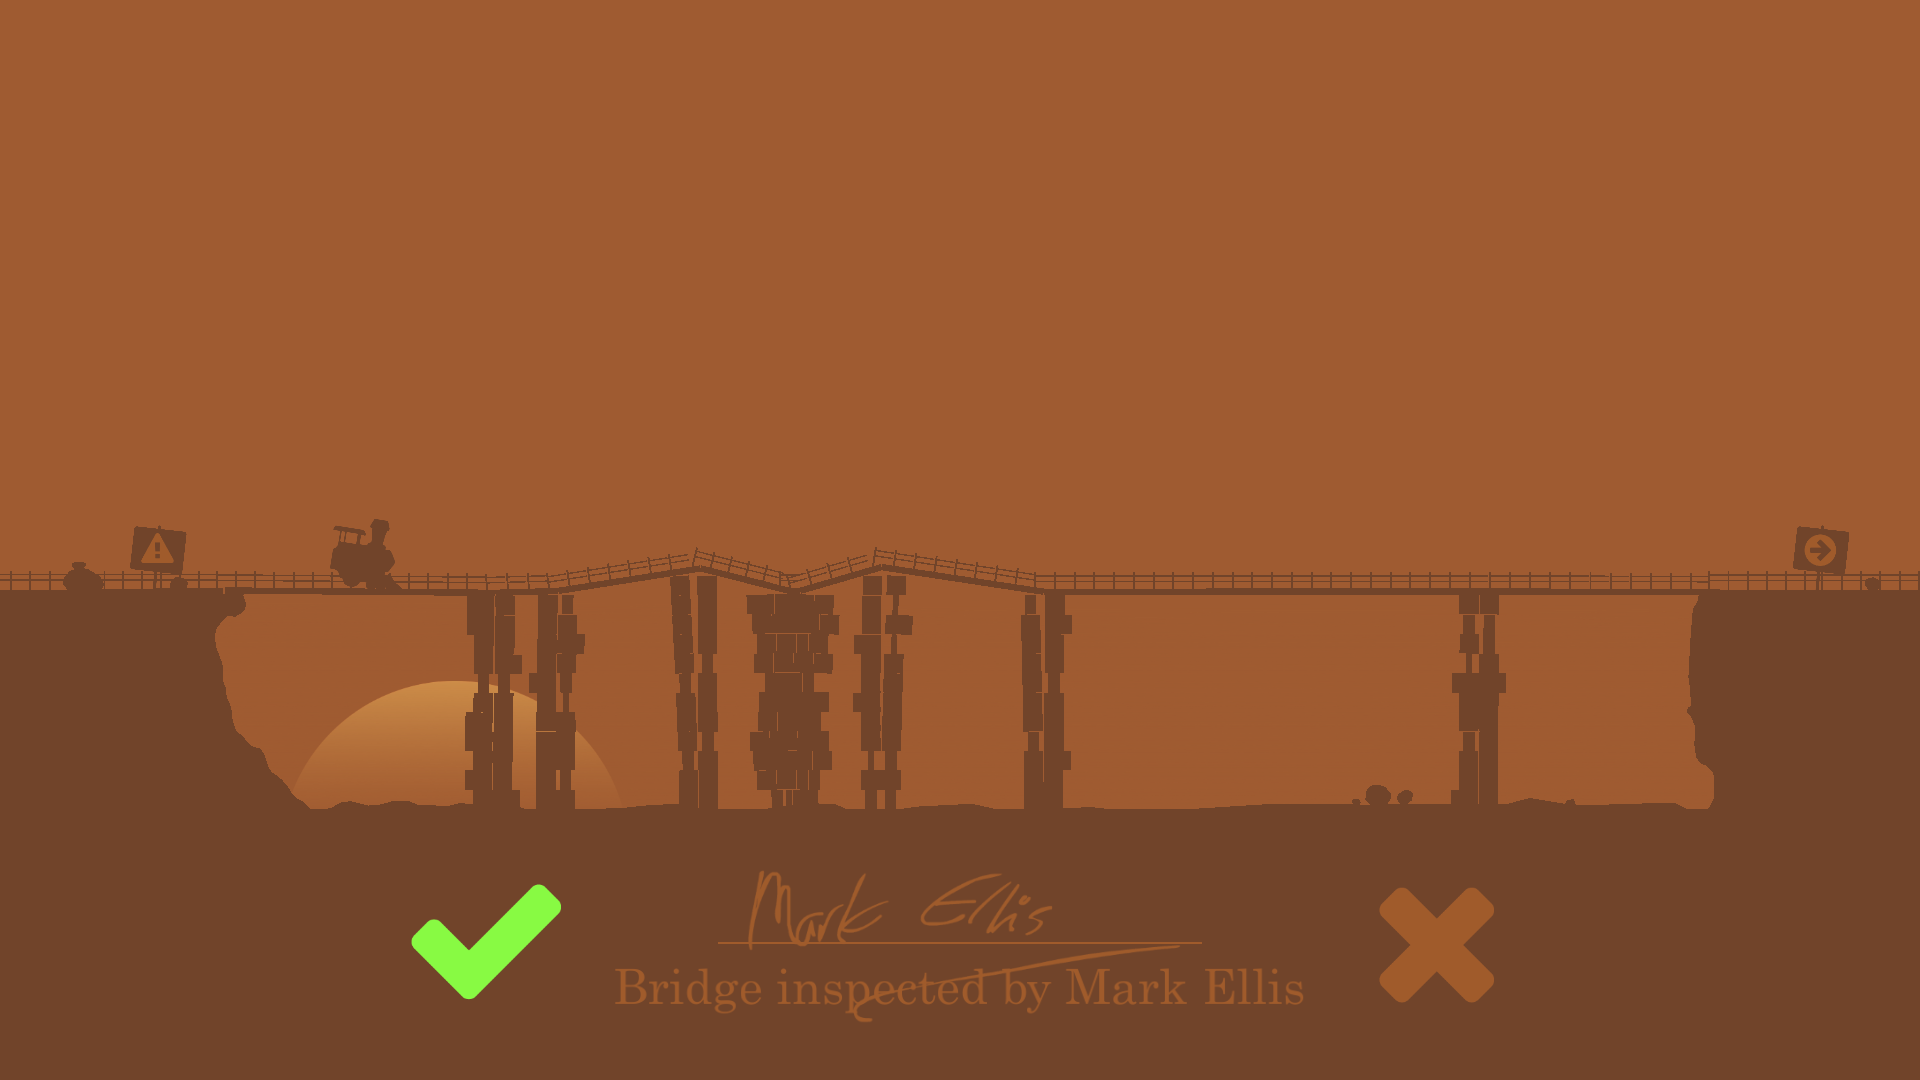 Mark Ellis: Train Bridge Inspector